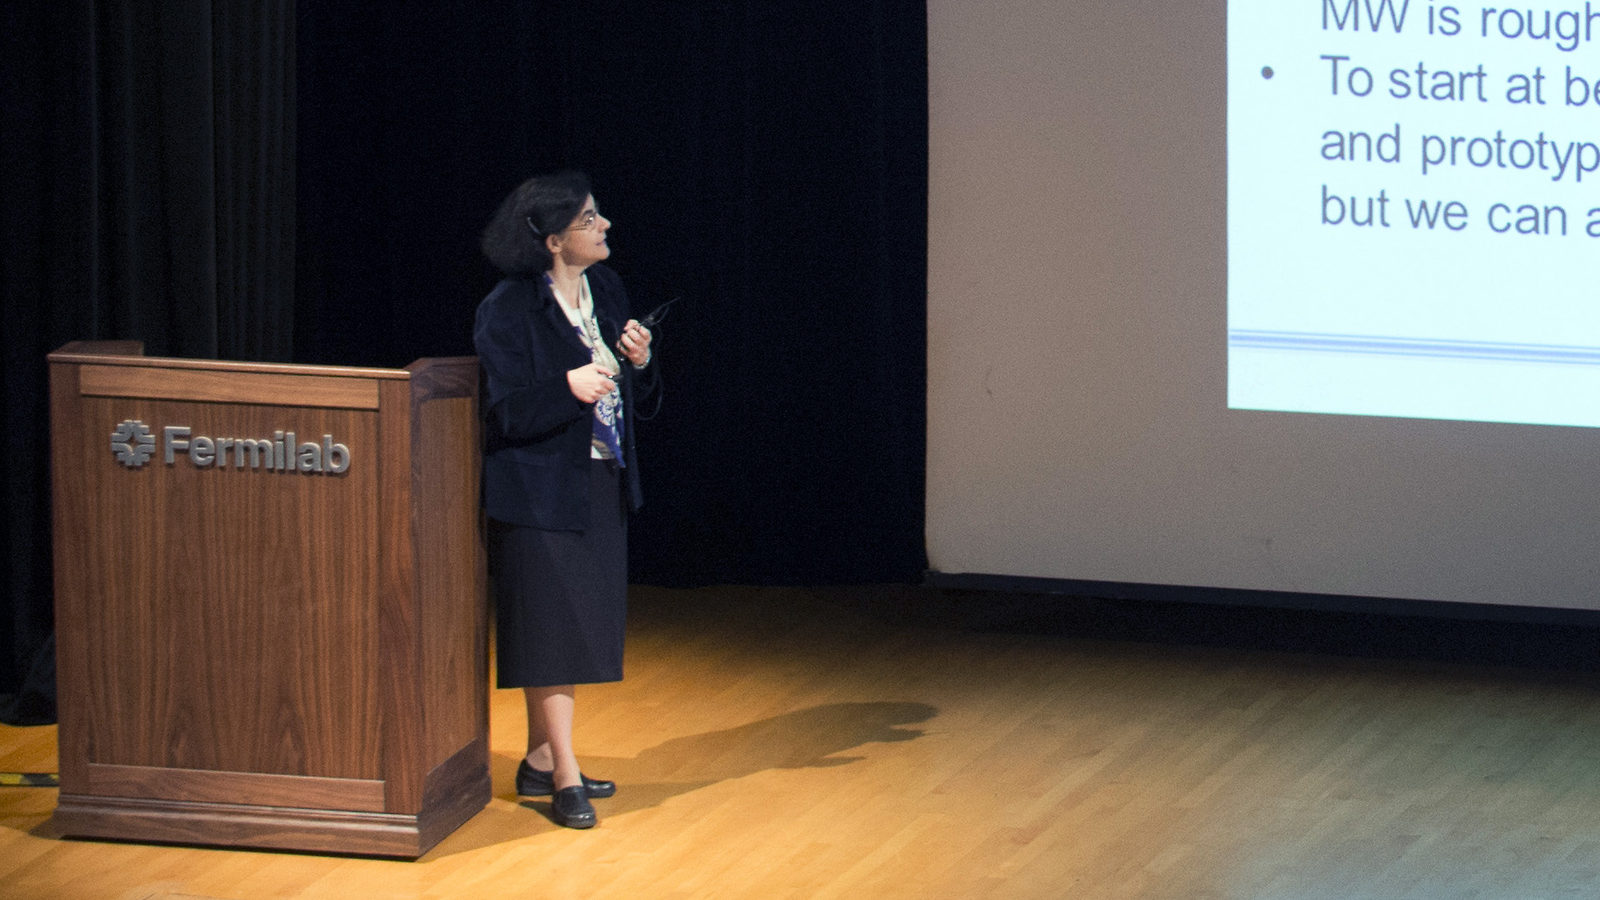 Photo of physicist giving speech at Fermilab